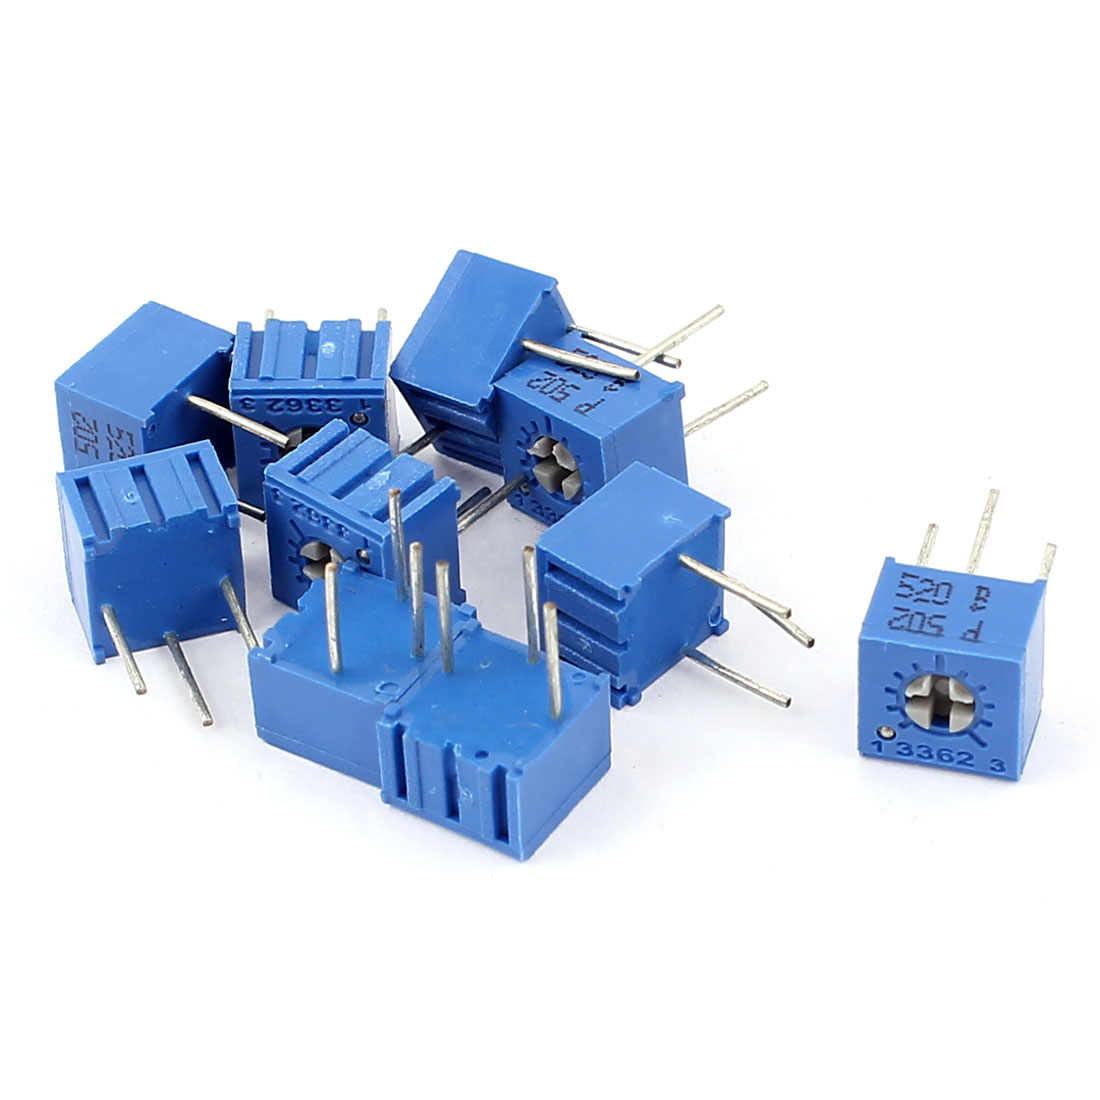 10Pcs Adjustable Potentiometer Trimmer Variable Resistor 3362P-502